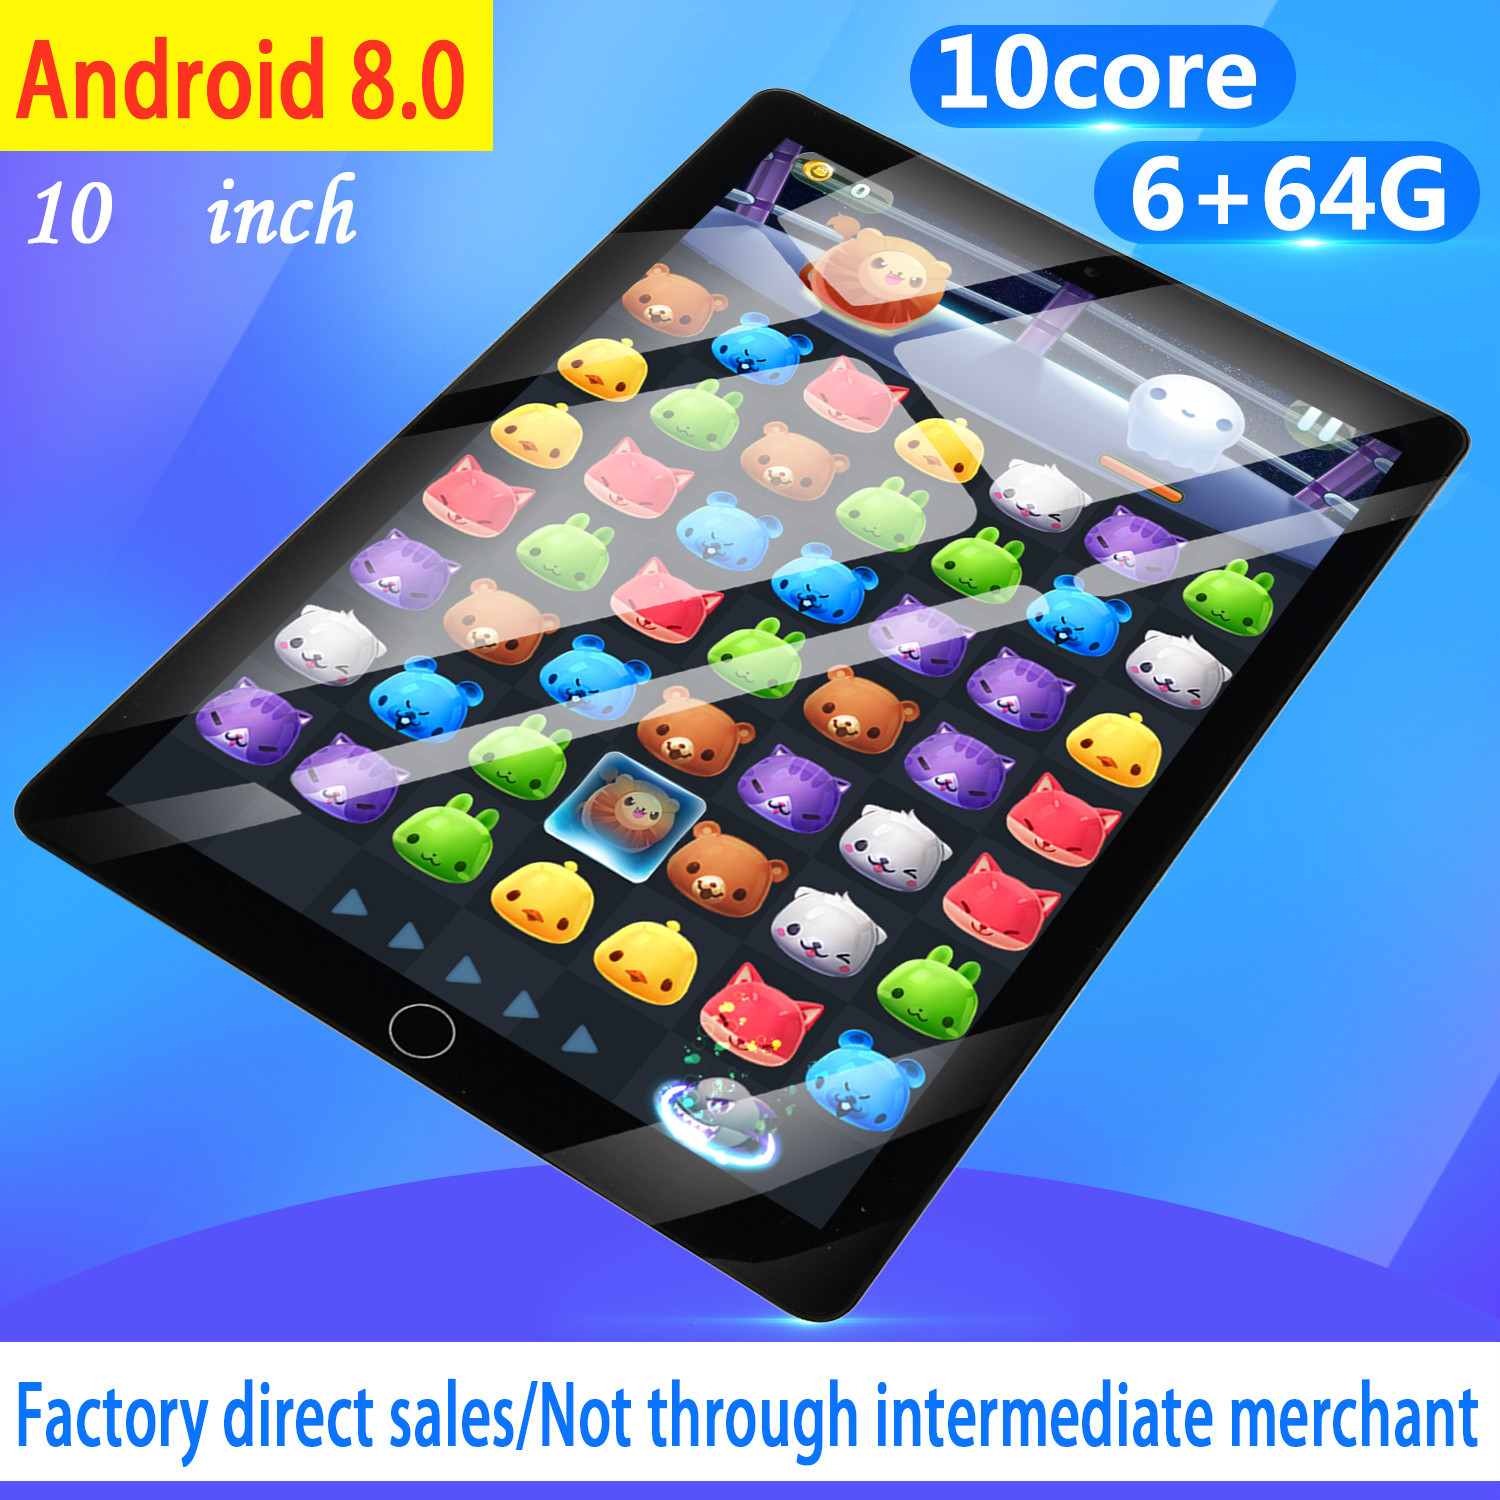 2020 10 Inch Tablet Pc Android Tablet  6GB+64GB Dual SIM 4G Tablet 10Core Android 8.0 Bluetooth WiFi Tablets